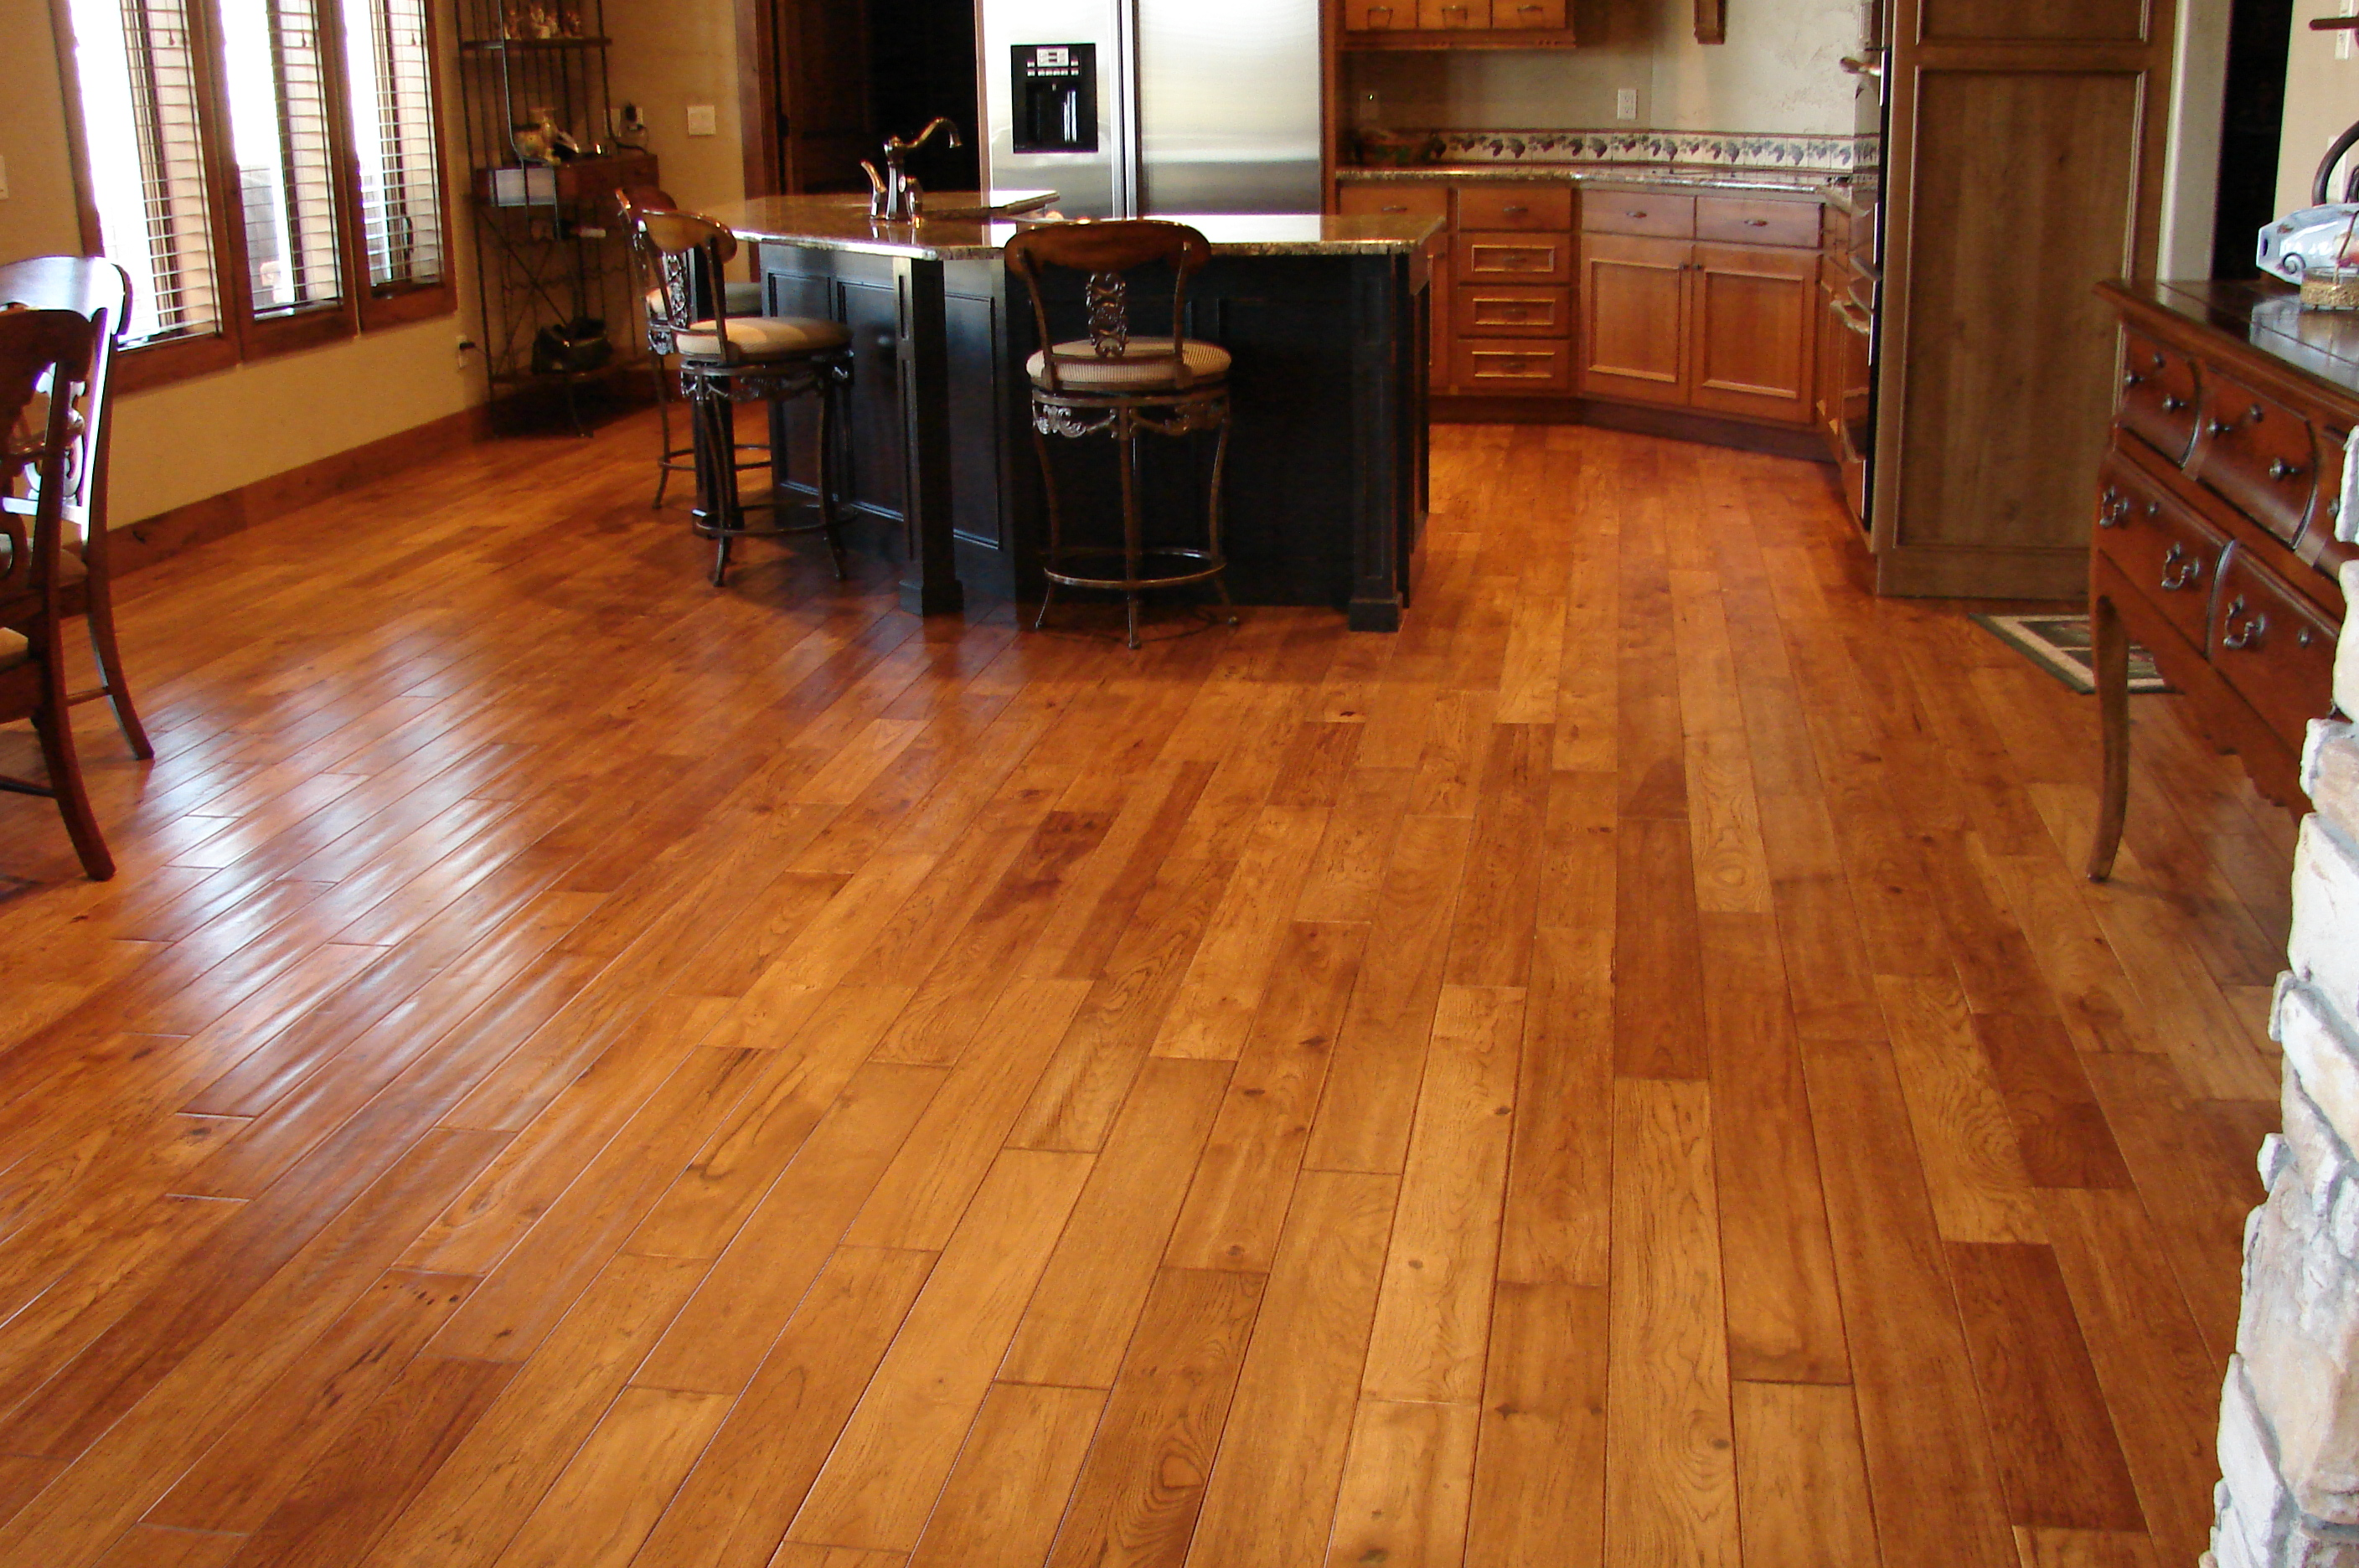 hardwood floors. Brilliant Hardwood Big Kitchen Hardwood Floor To Floors E